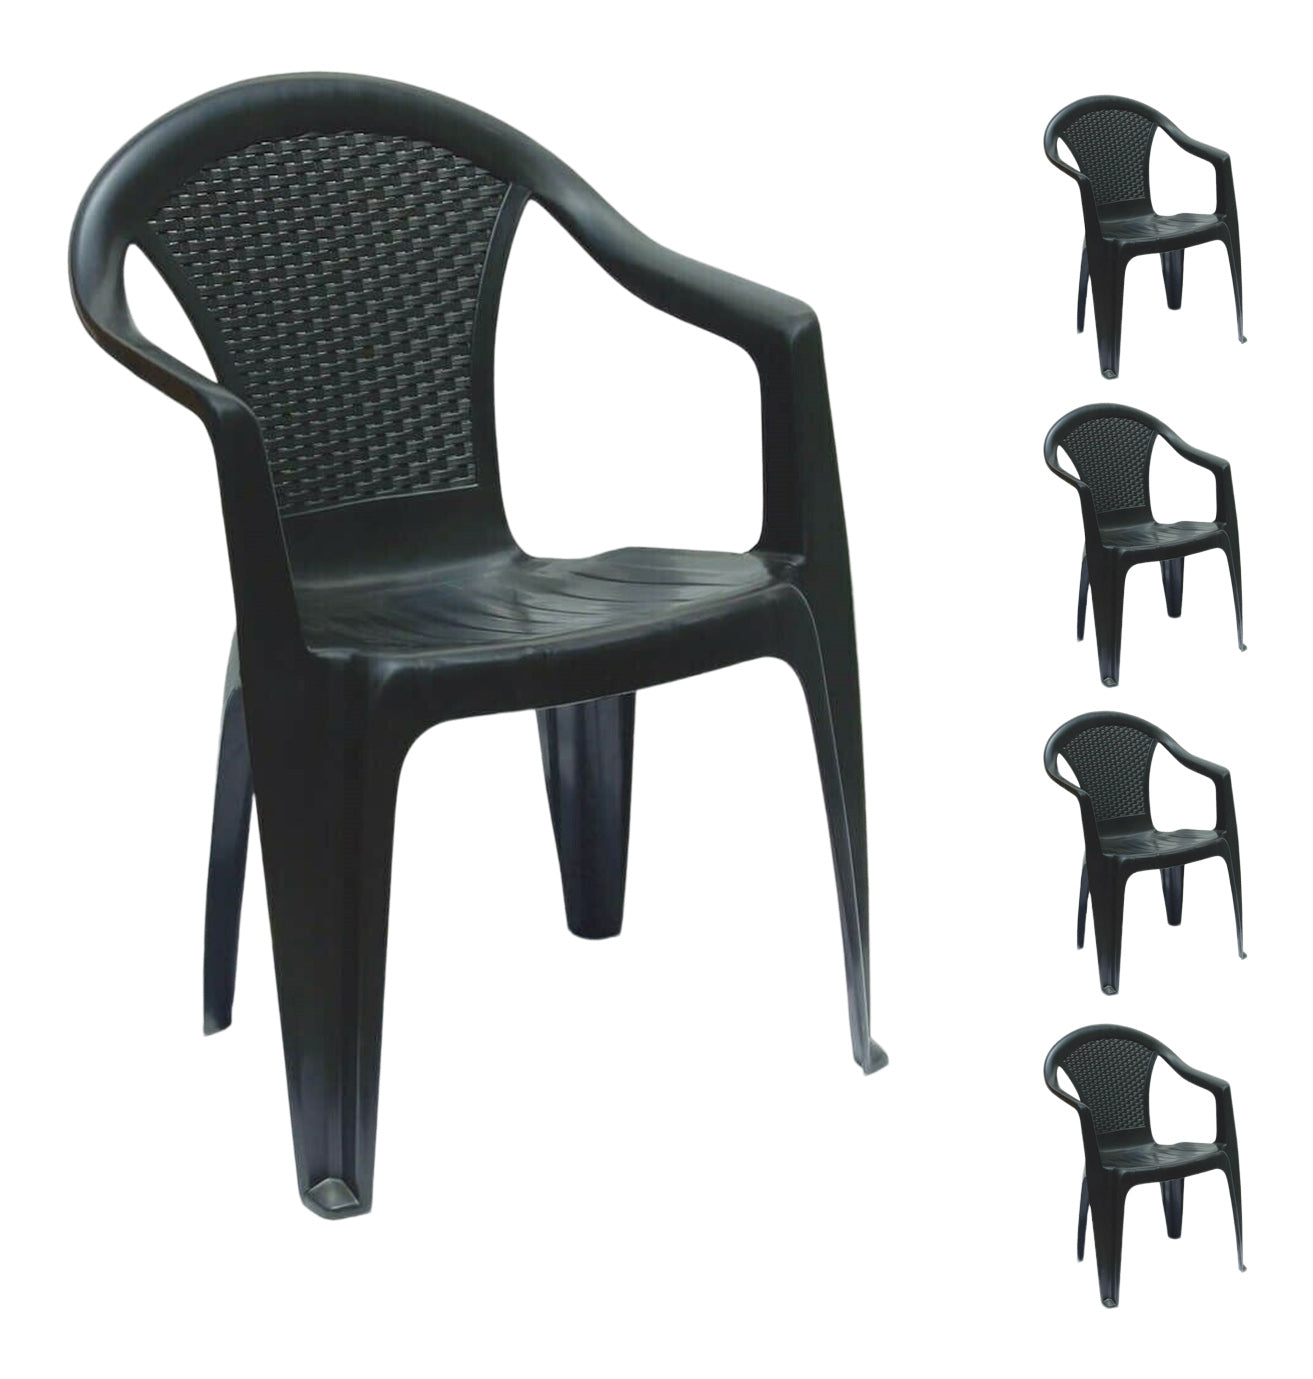 Set Of 4 Rattan Garden Chairs Stackable Plastic Outdoor Chairs With Arms Black